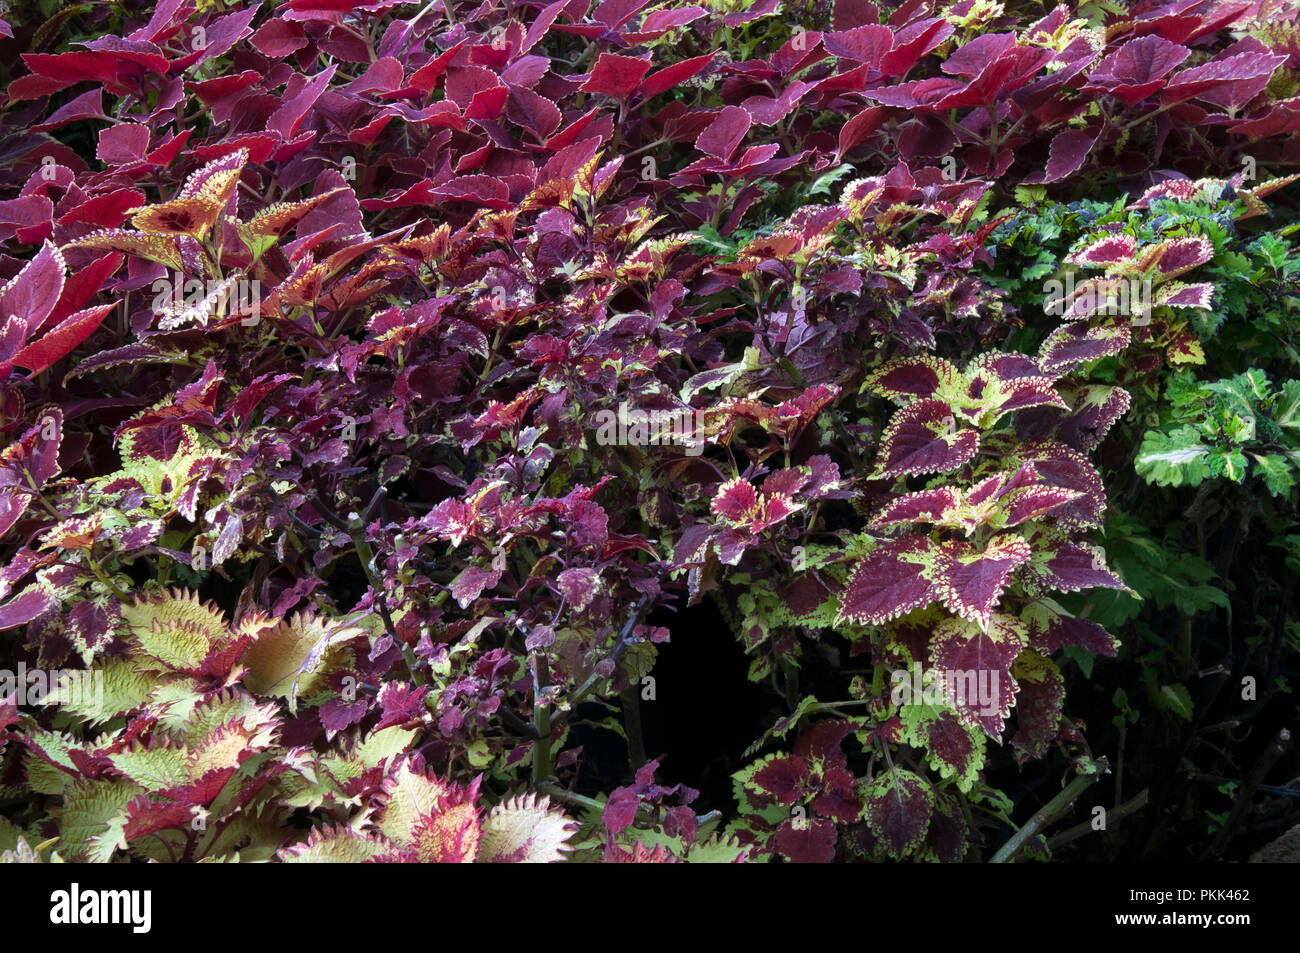 Sydney Australia, Variegated Coleus ornamental bush with two tone crimson and green leaves - Stock Image